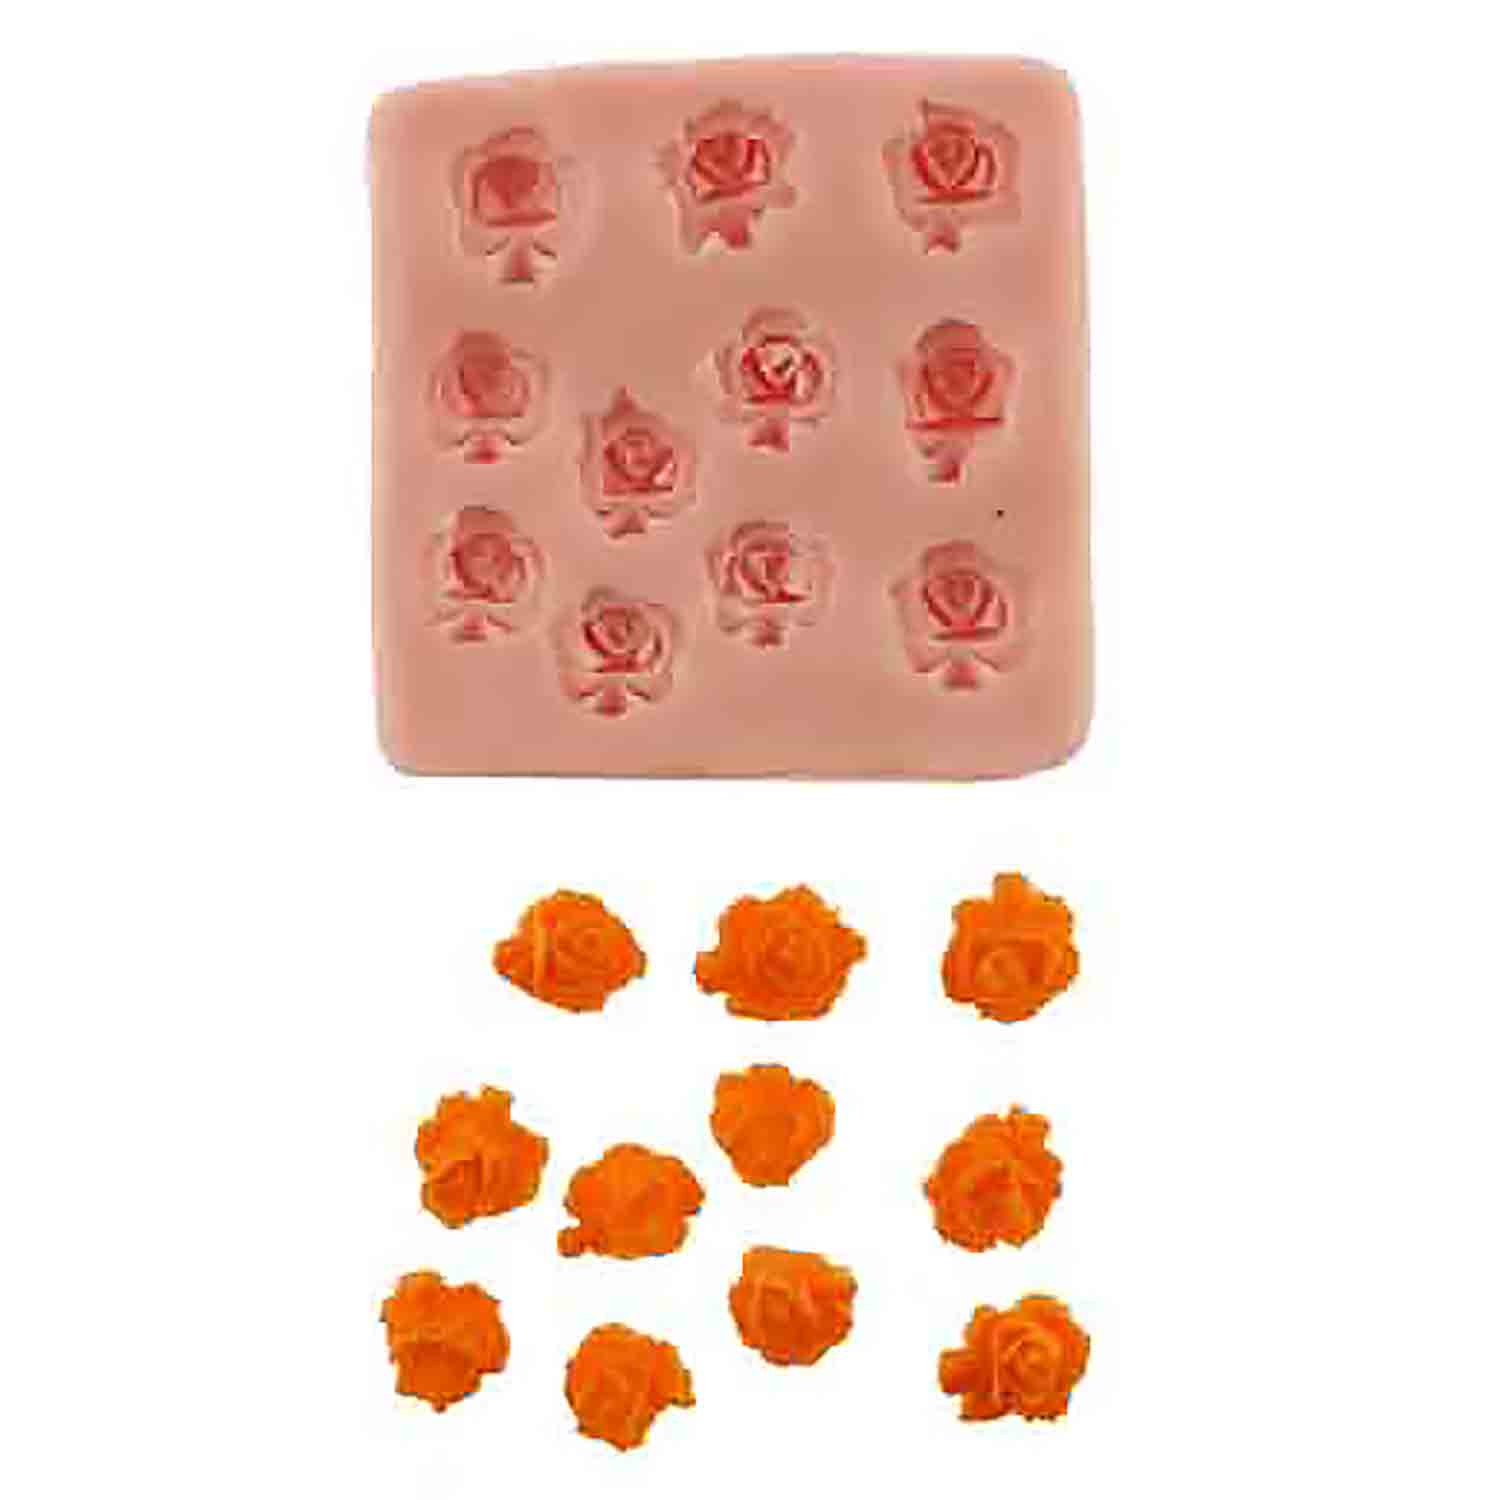 Lots of Roses Silicone Mold